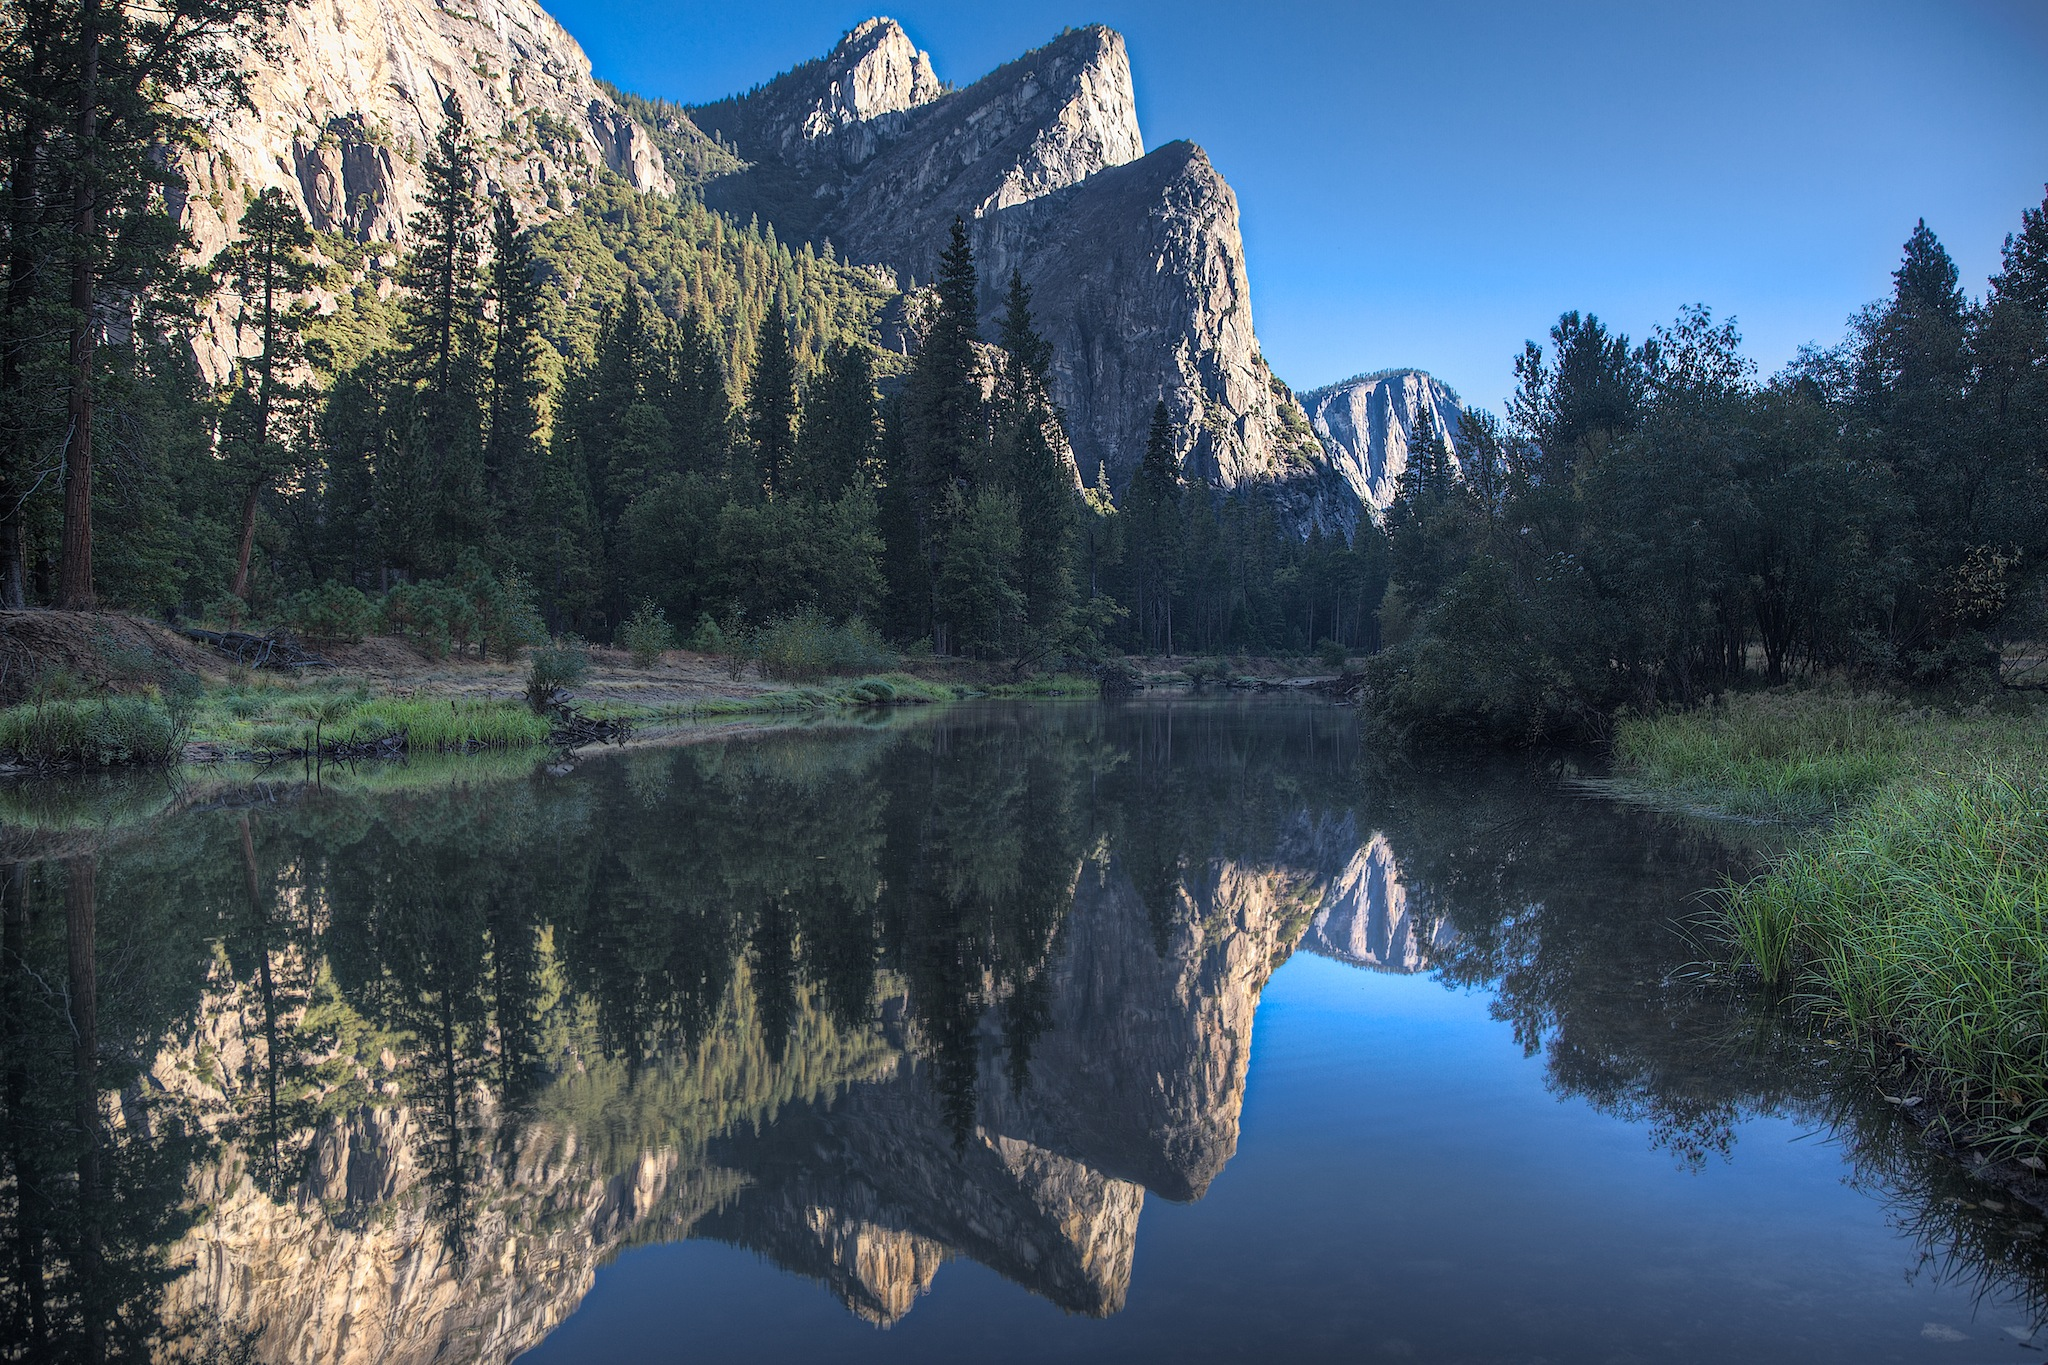 Three Brothers - Merced River - Yosemite - 2010